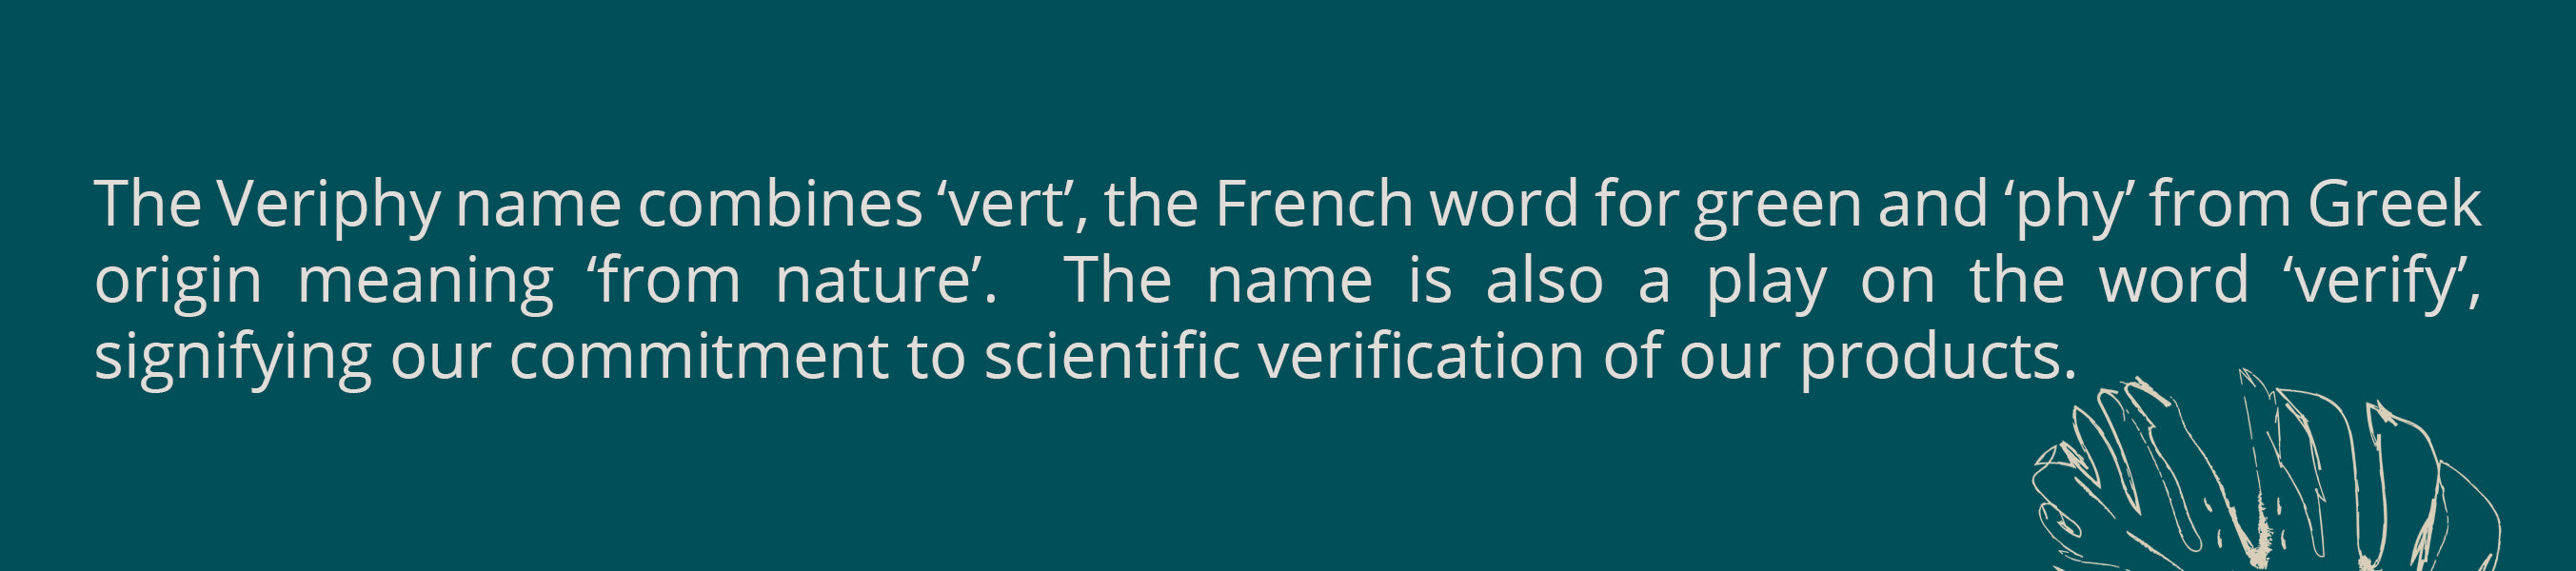 The Veriphy name combines 'vert', the French word for green and 'phy' from Greek origin meaning 'from nature'.  The name is also a play on the word 'verify', signifying our commitment to scientific verification of our products.